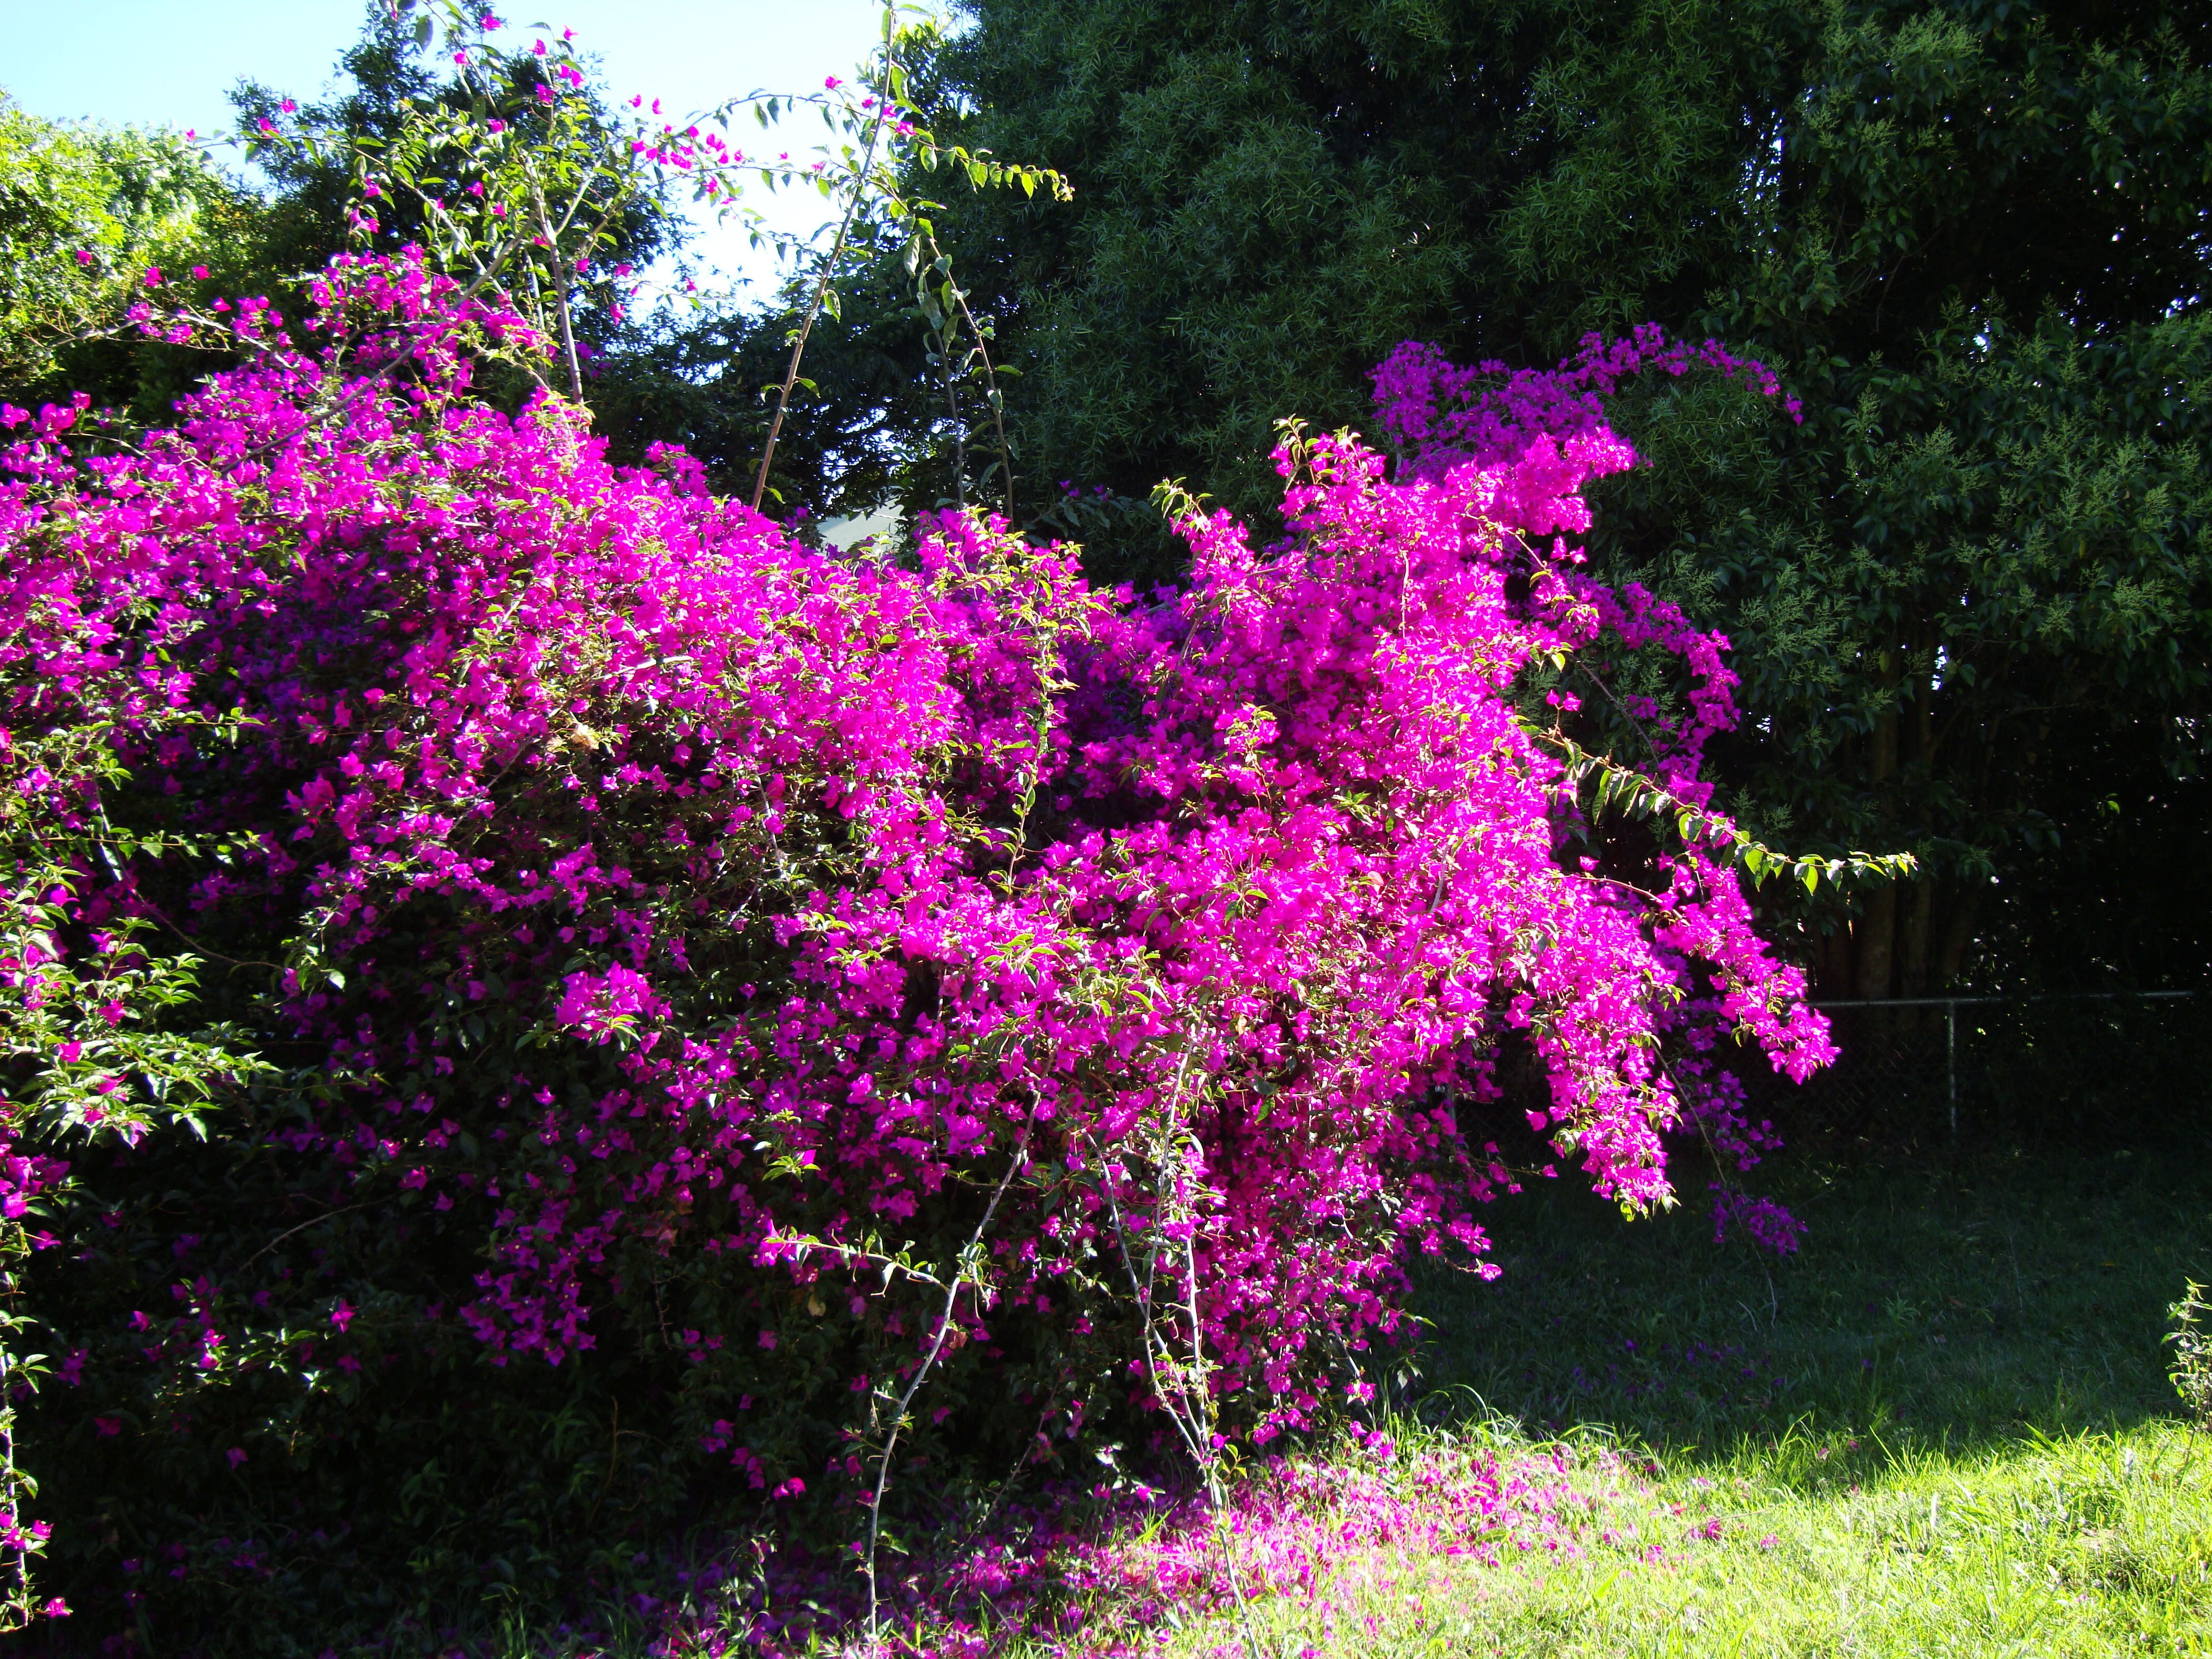 Southern flowering trees and shrubs asisbiz shrubs bushes bushes southern flowering trees and shrubs asisbiz shrubs bushes bushesshrubs small dhlflorist Gallery